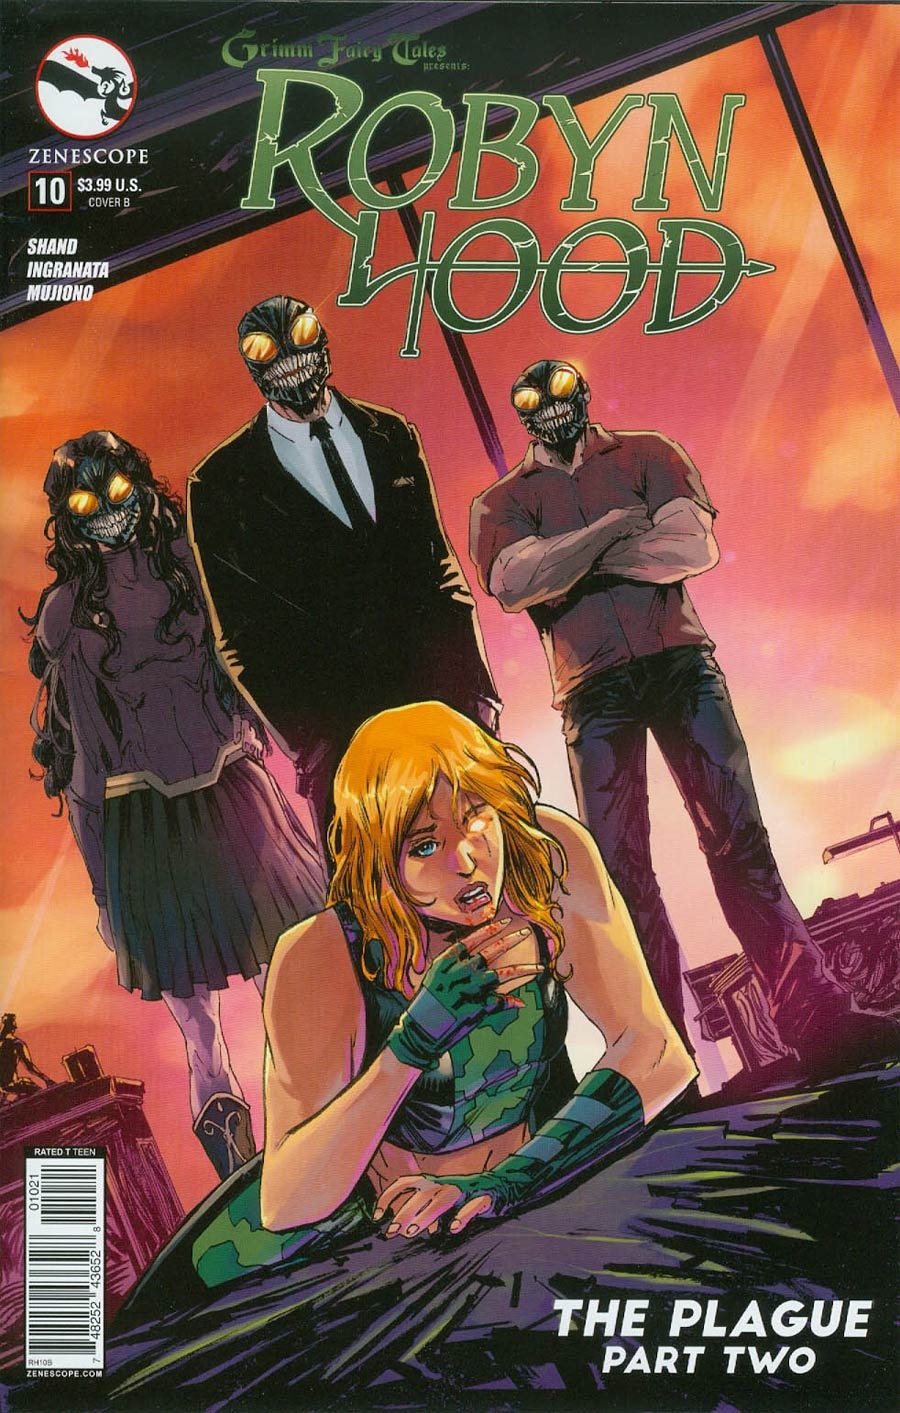 Grimm Fairy Tales Presents Robyn Hood Vol 2 #10 Cover B Tony Brescini